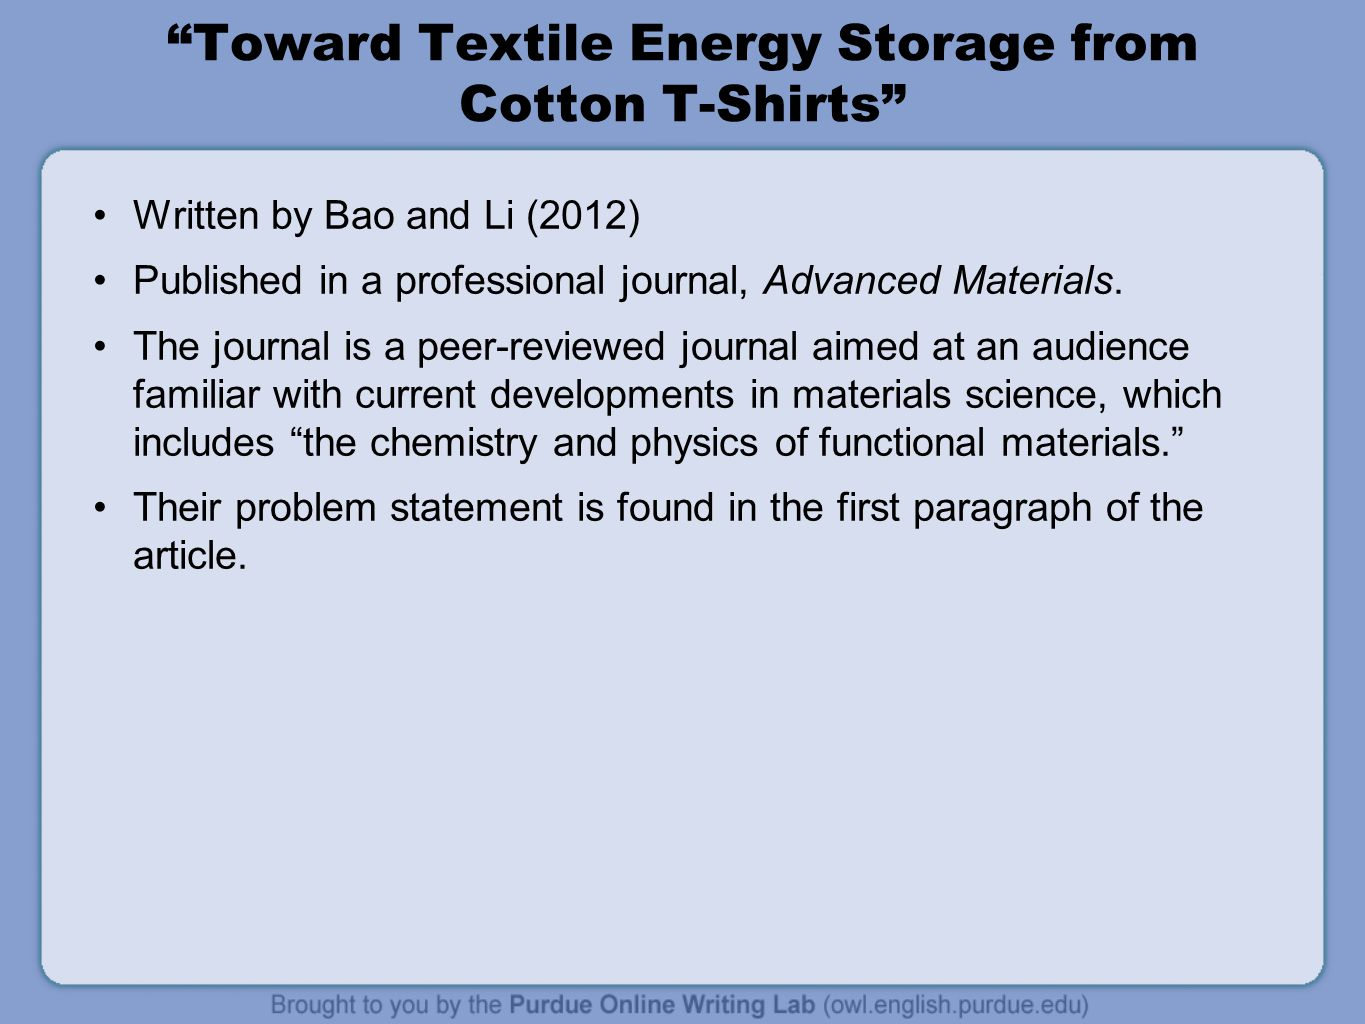 Toward Textile Energy Storage from Cotton T-Shirts Written by Bao and Li (2012) Published in a professional journal, Advanced Materials.